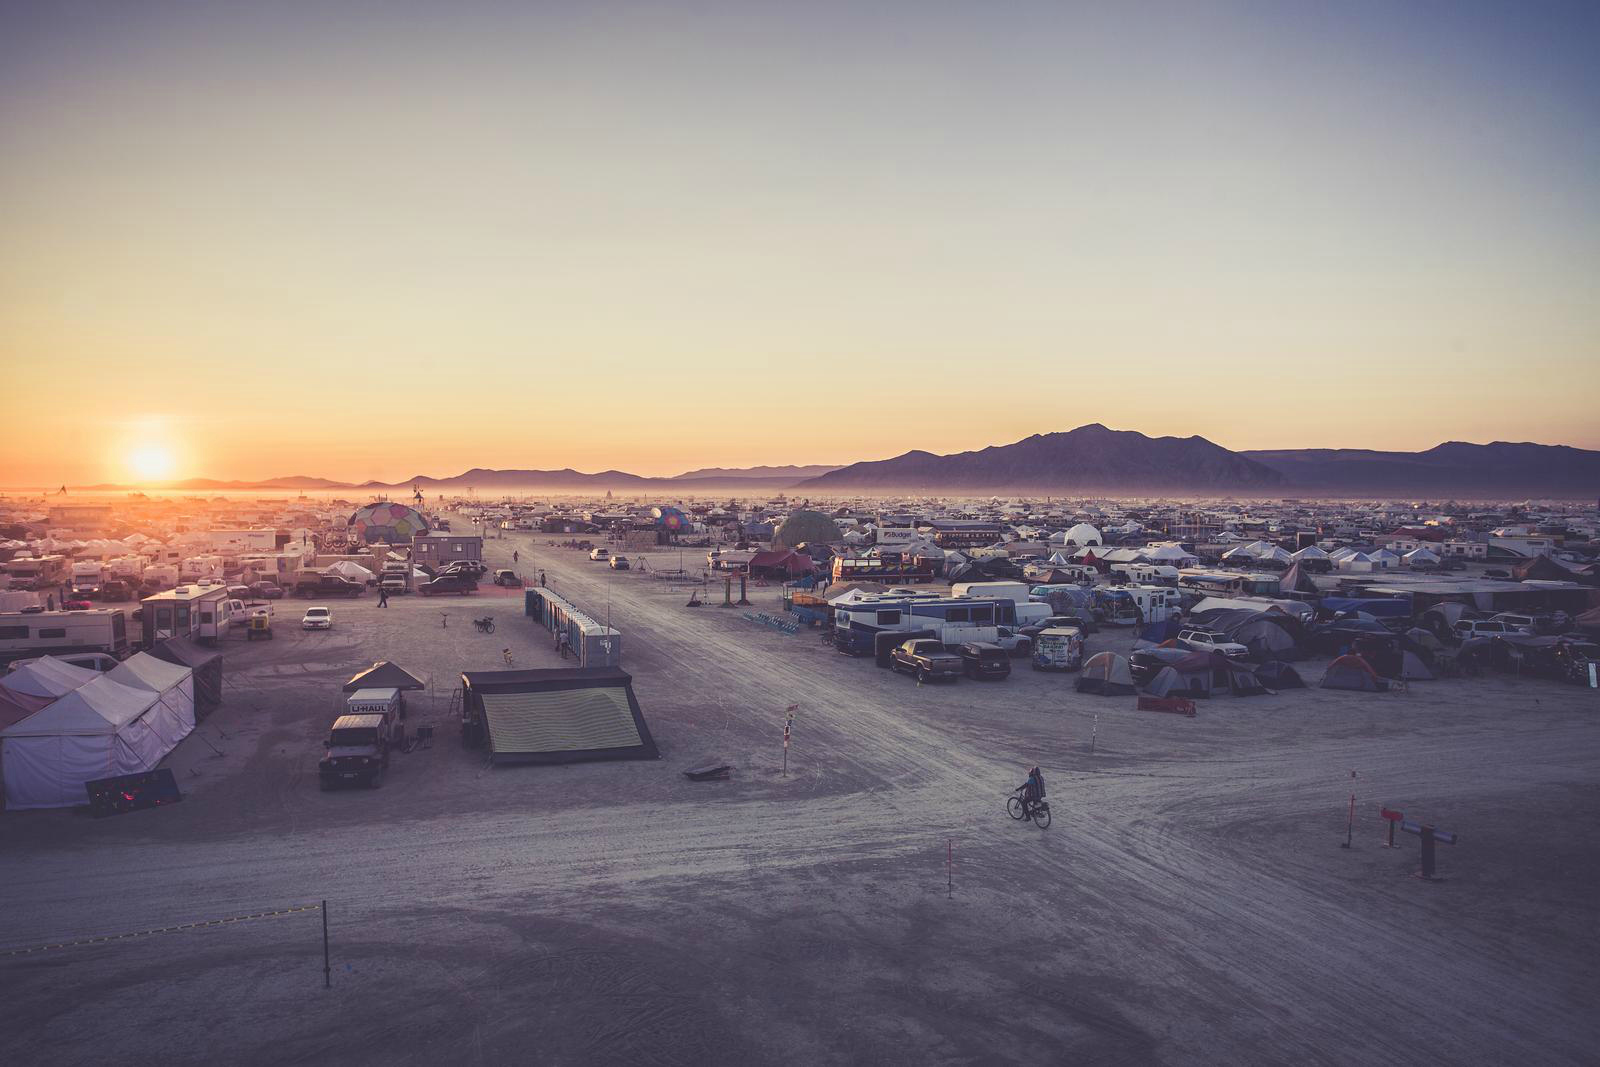 Lever de soleil a Burning Man. Photo: Remi Jaouen